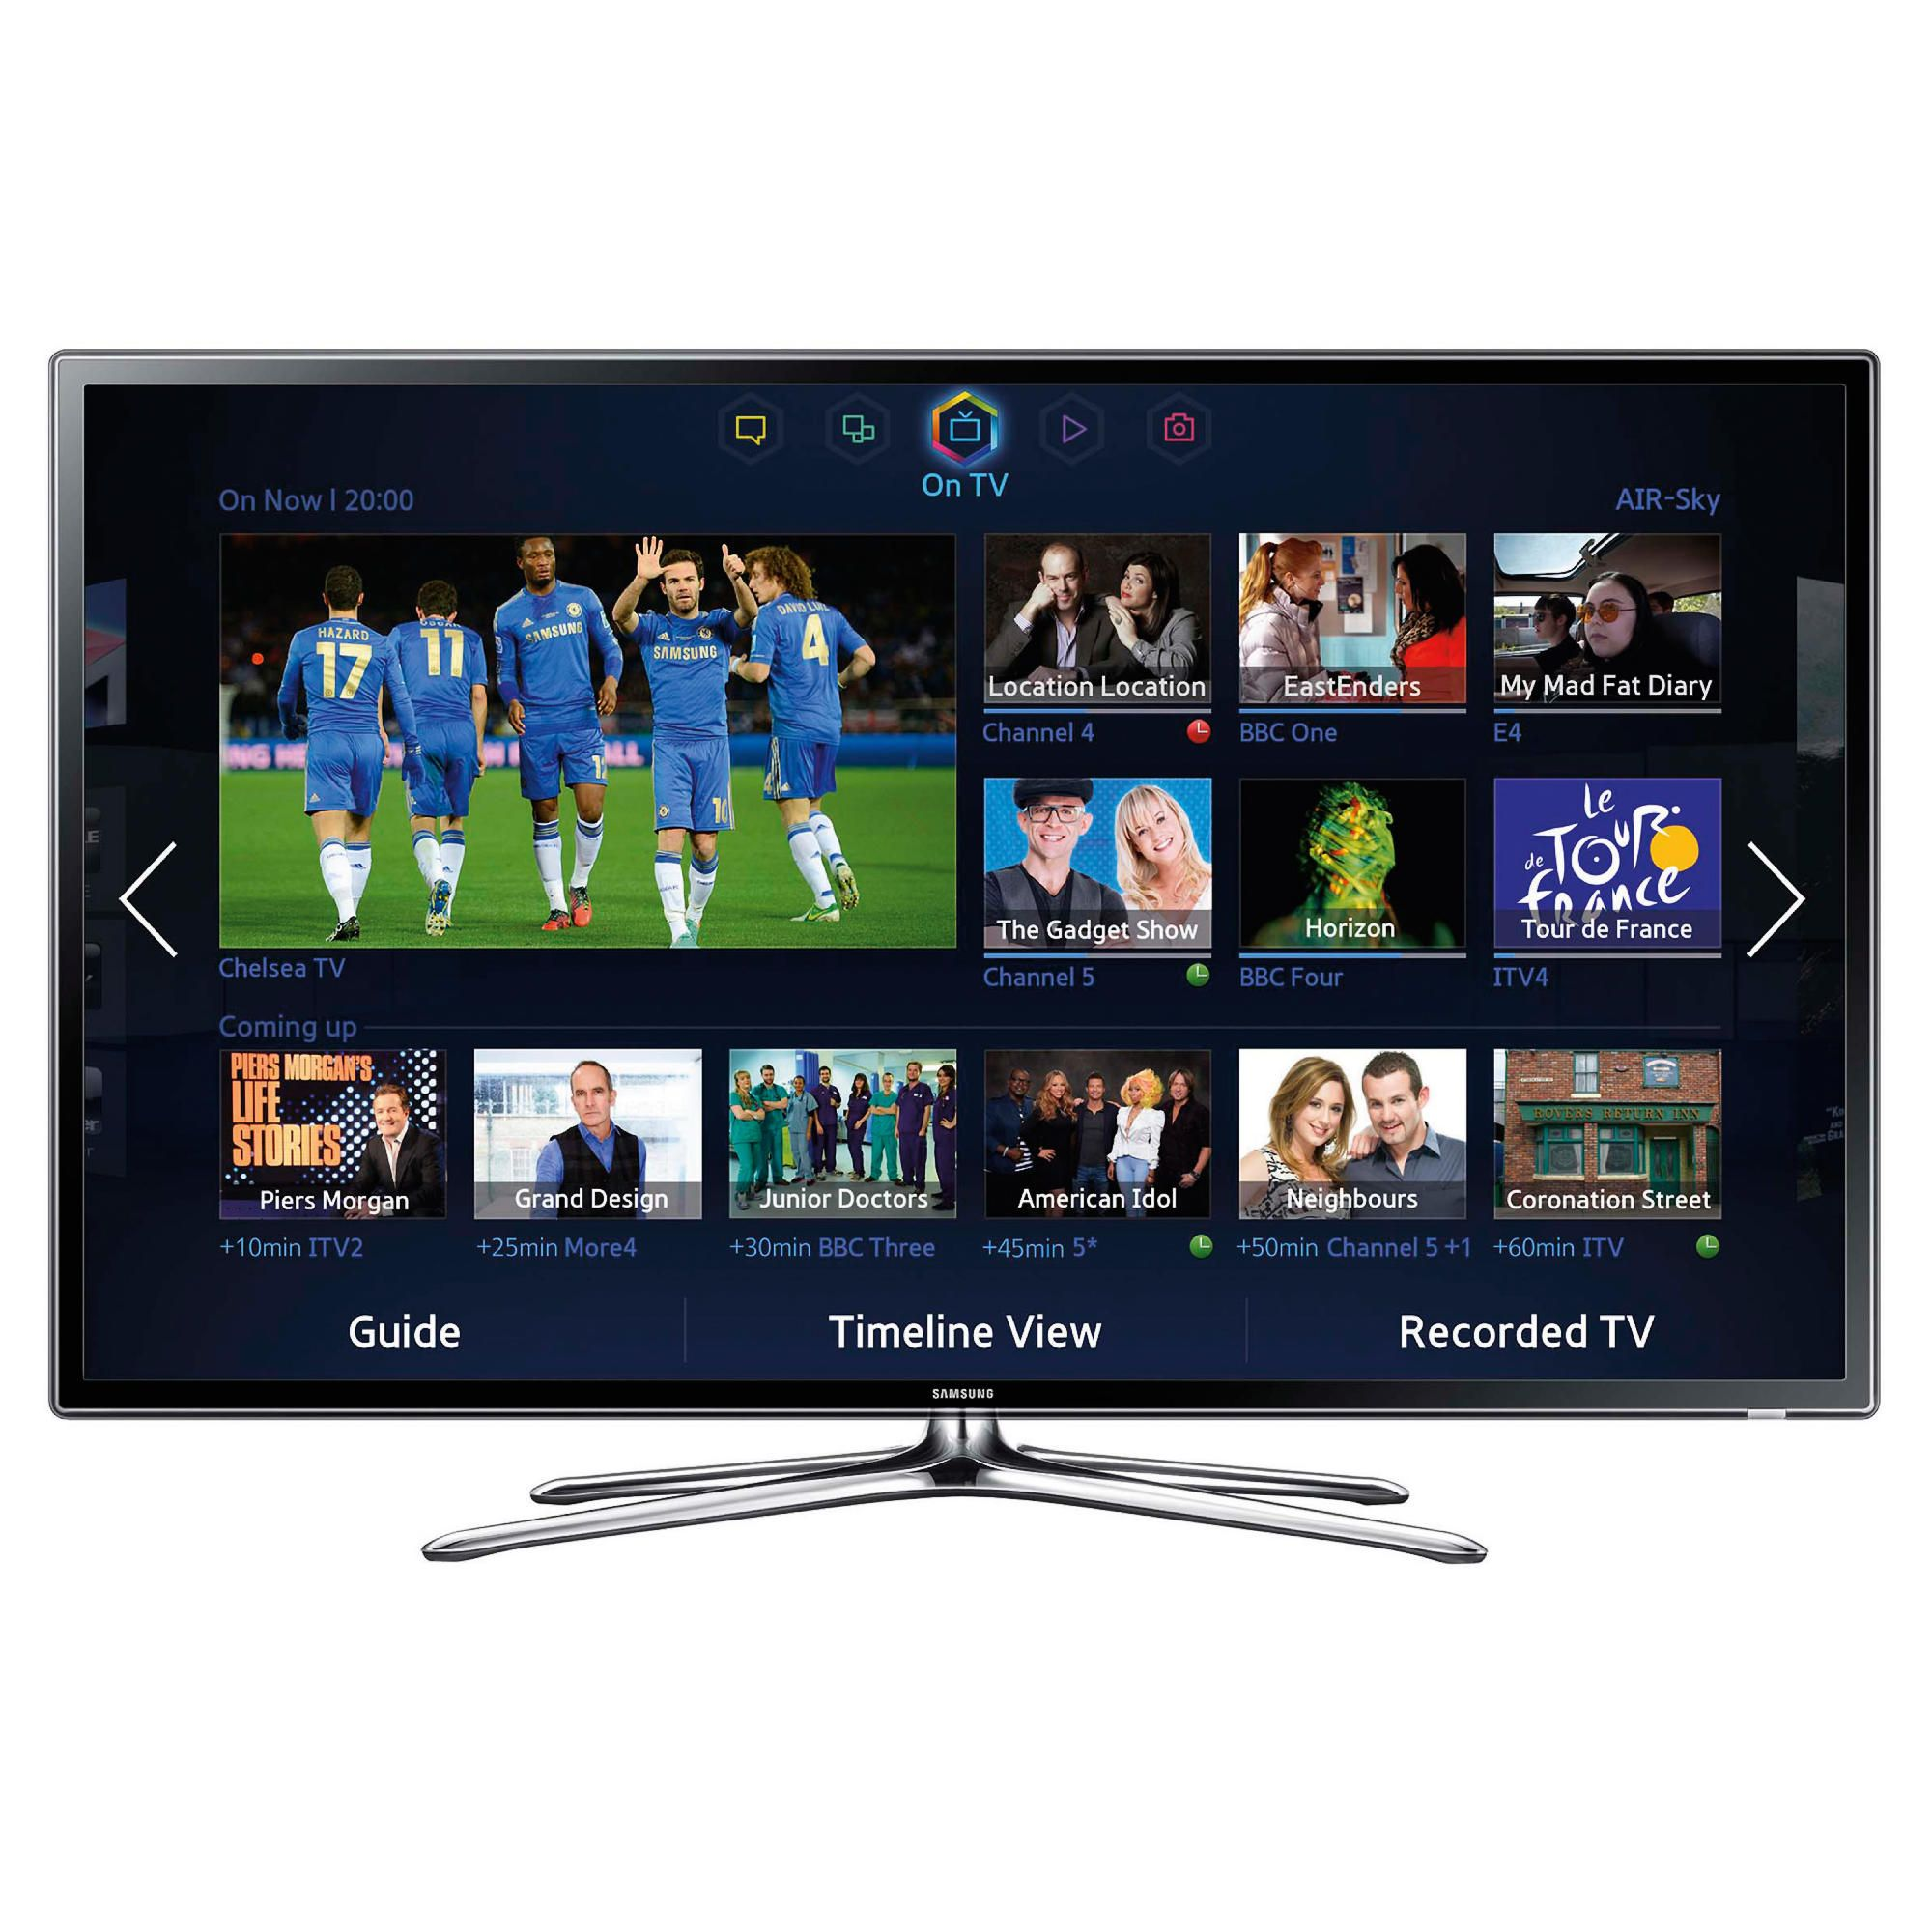 Samsung UE46F6320 46inch Full HD 1080p 3D Slim LED Smart TV with Freeview HD